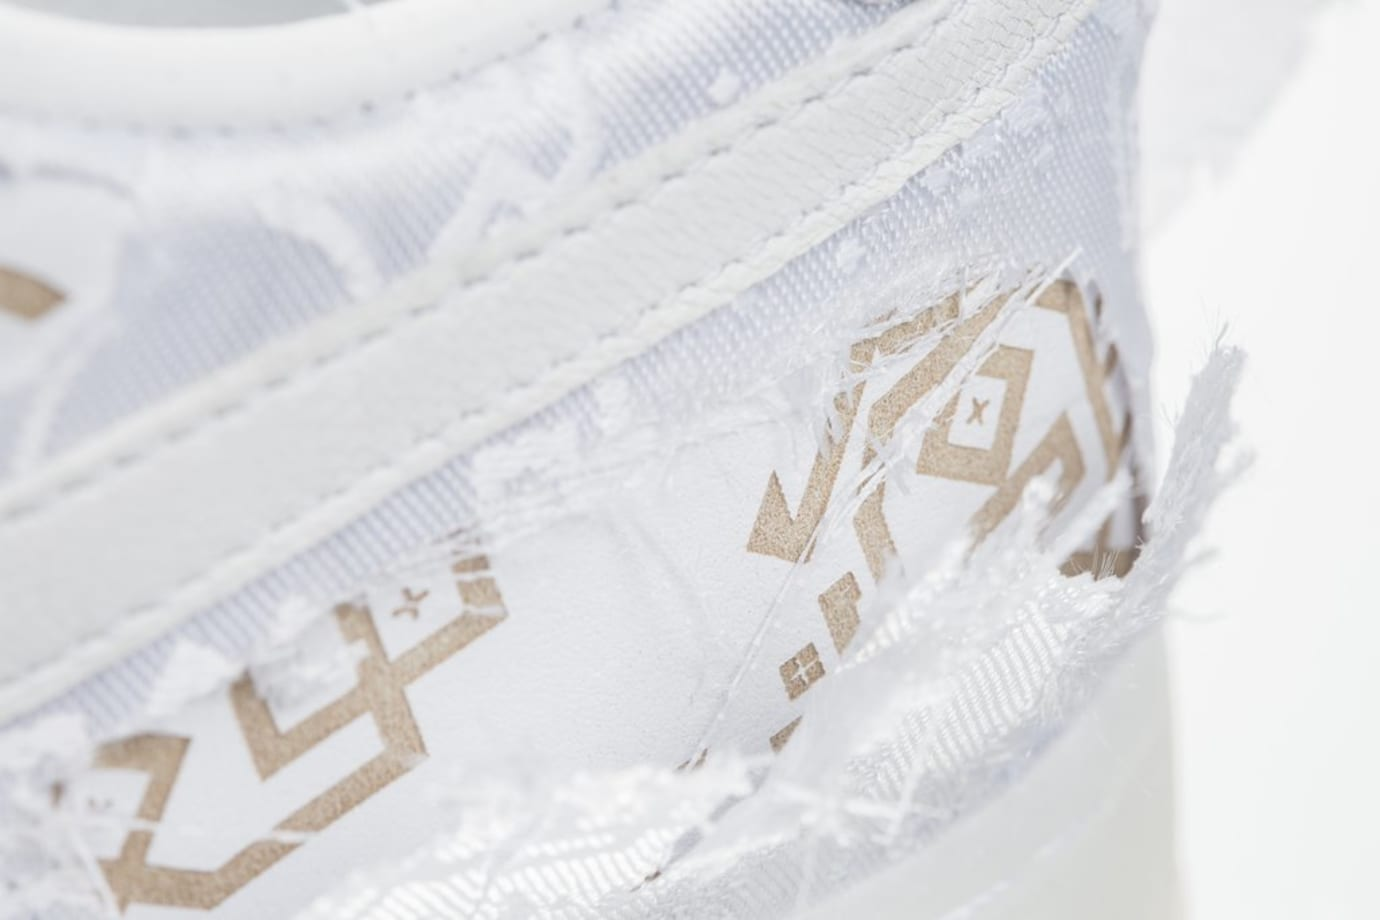 quality design 34cc9 00eb4 CLOT x Nike Air Force 1 AO9286-100 Official Images | Sole Collector